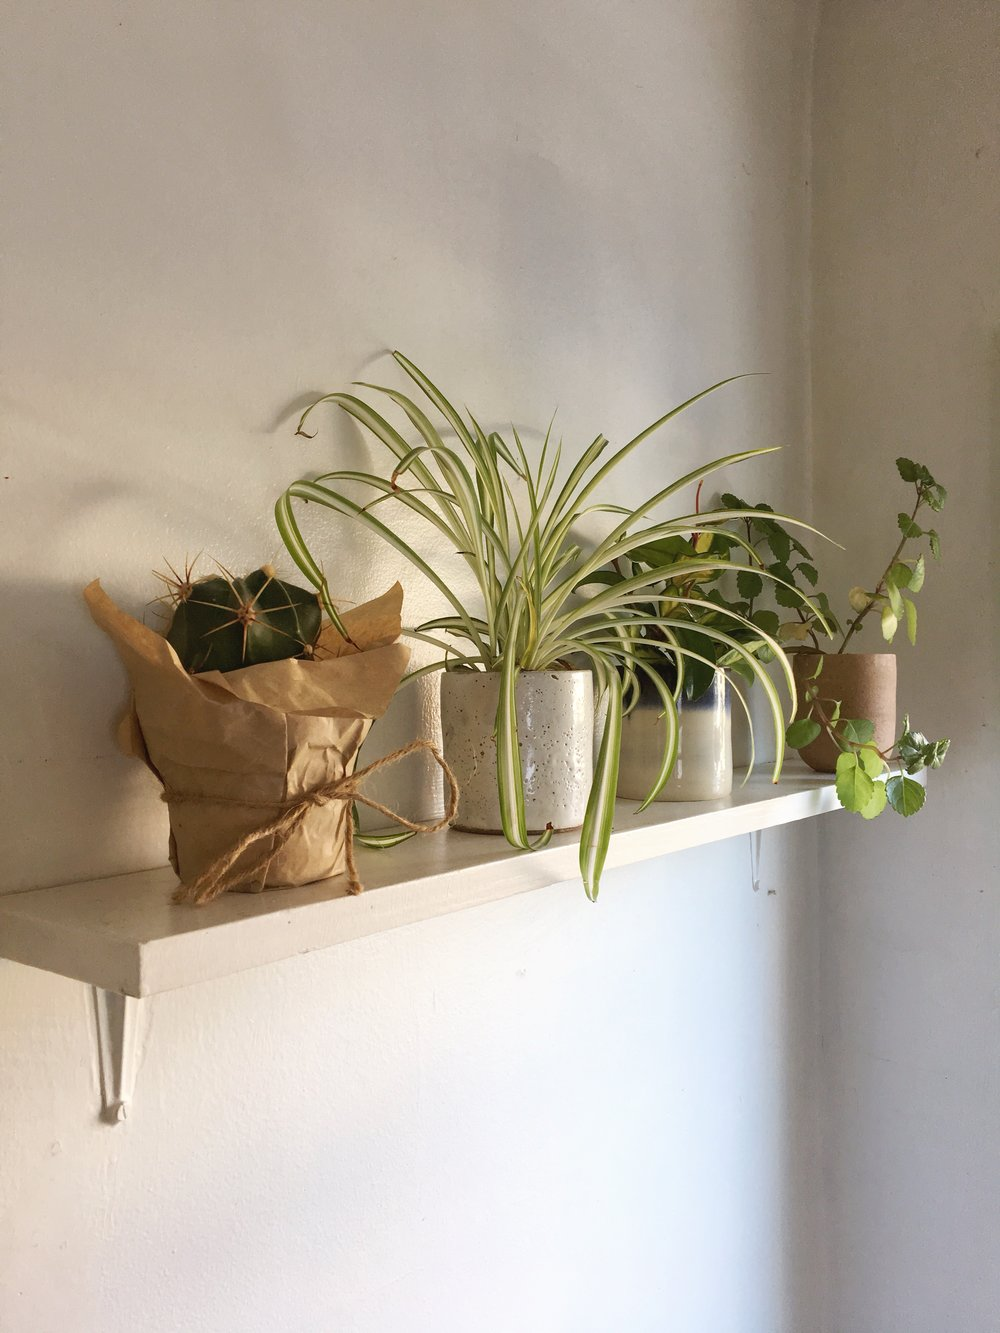 house plants | indoor plants | keeping house plants alive | Canadian lifestyle blogger | freelance writer | post grad | The States of Georgia blog | writing and lifestyle blog